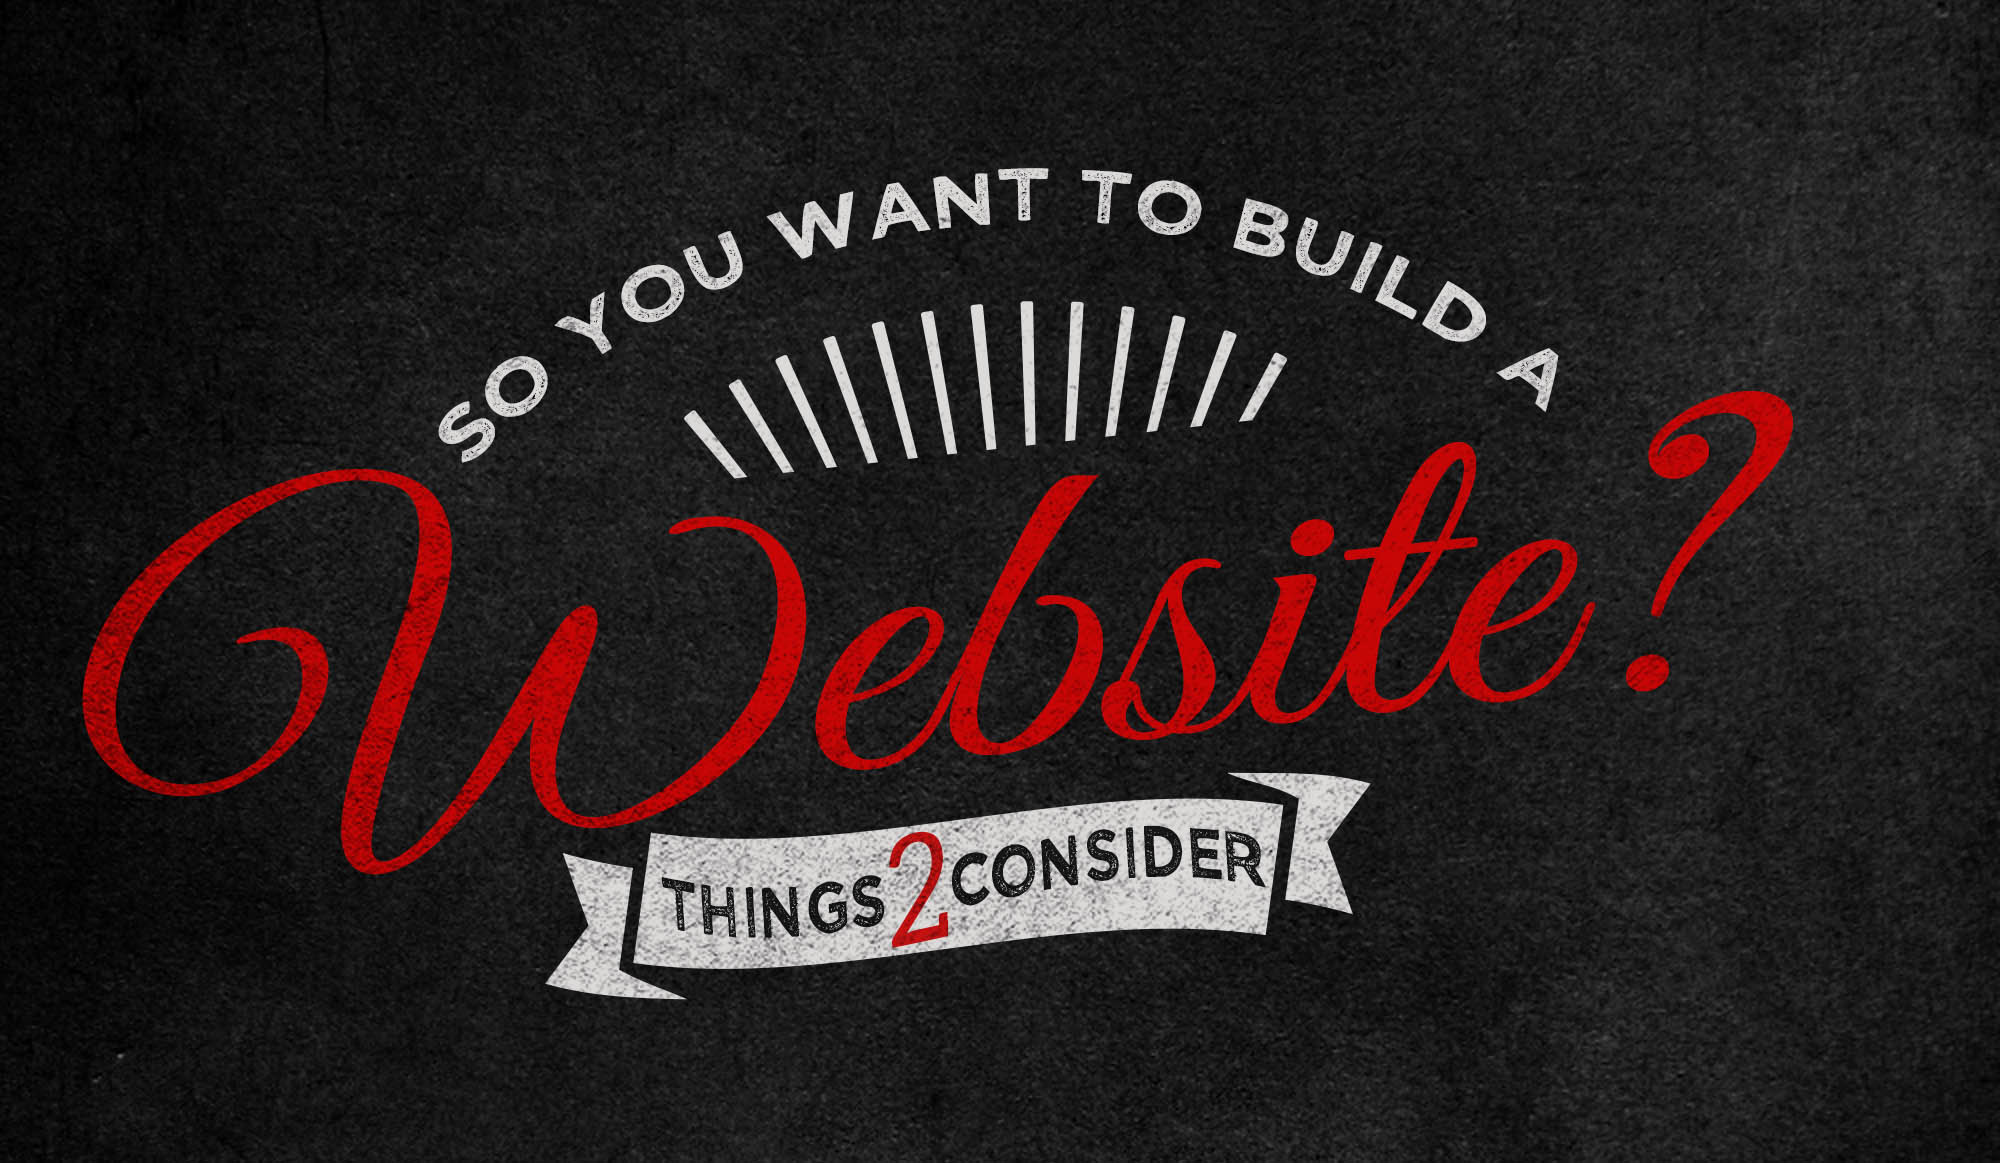 Want to build a website?